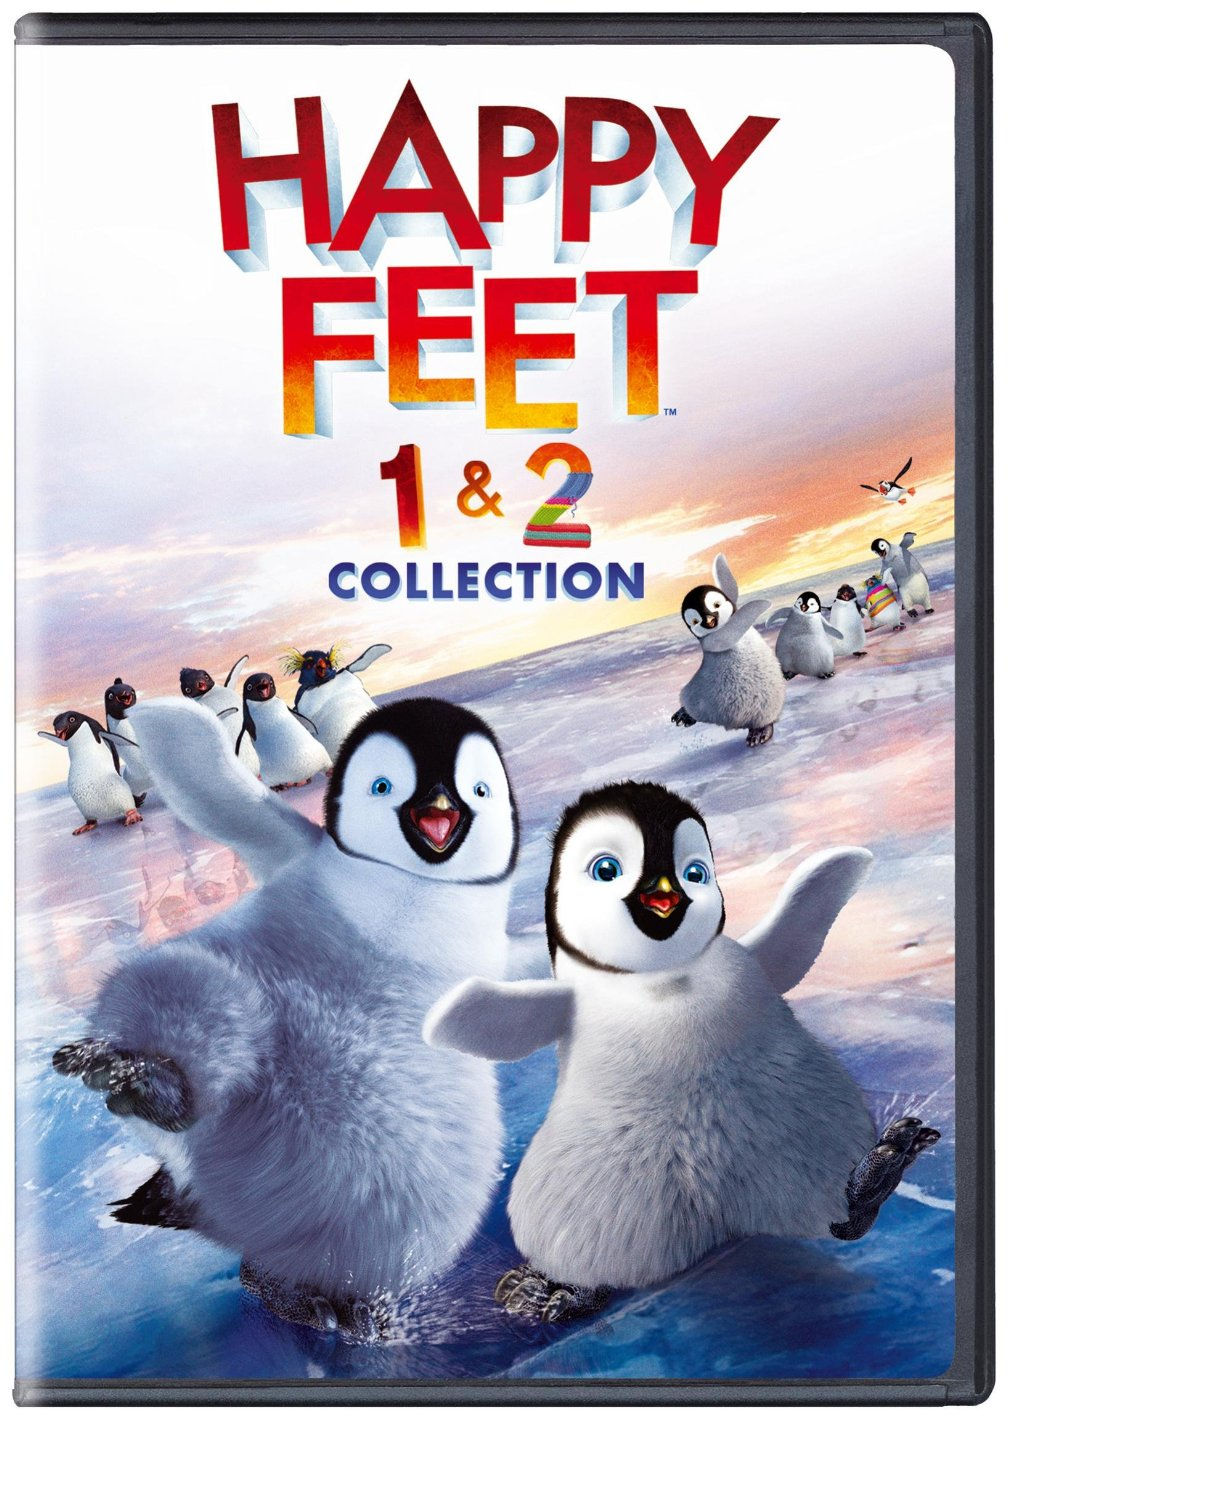 Happy feet coupons and discount codes